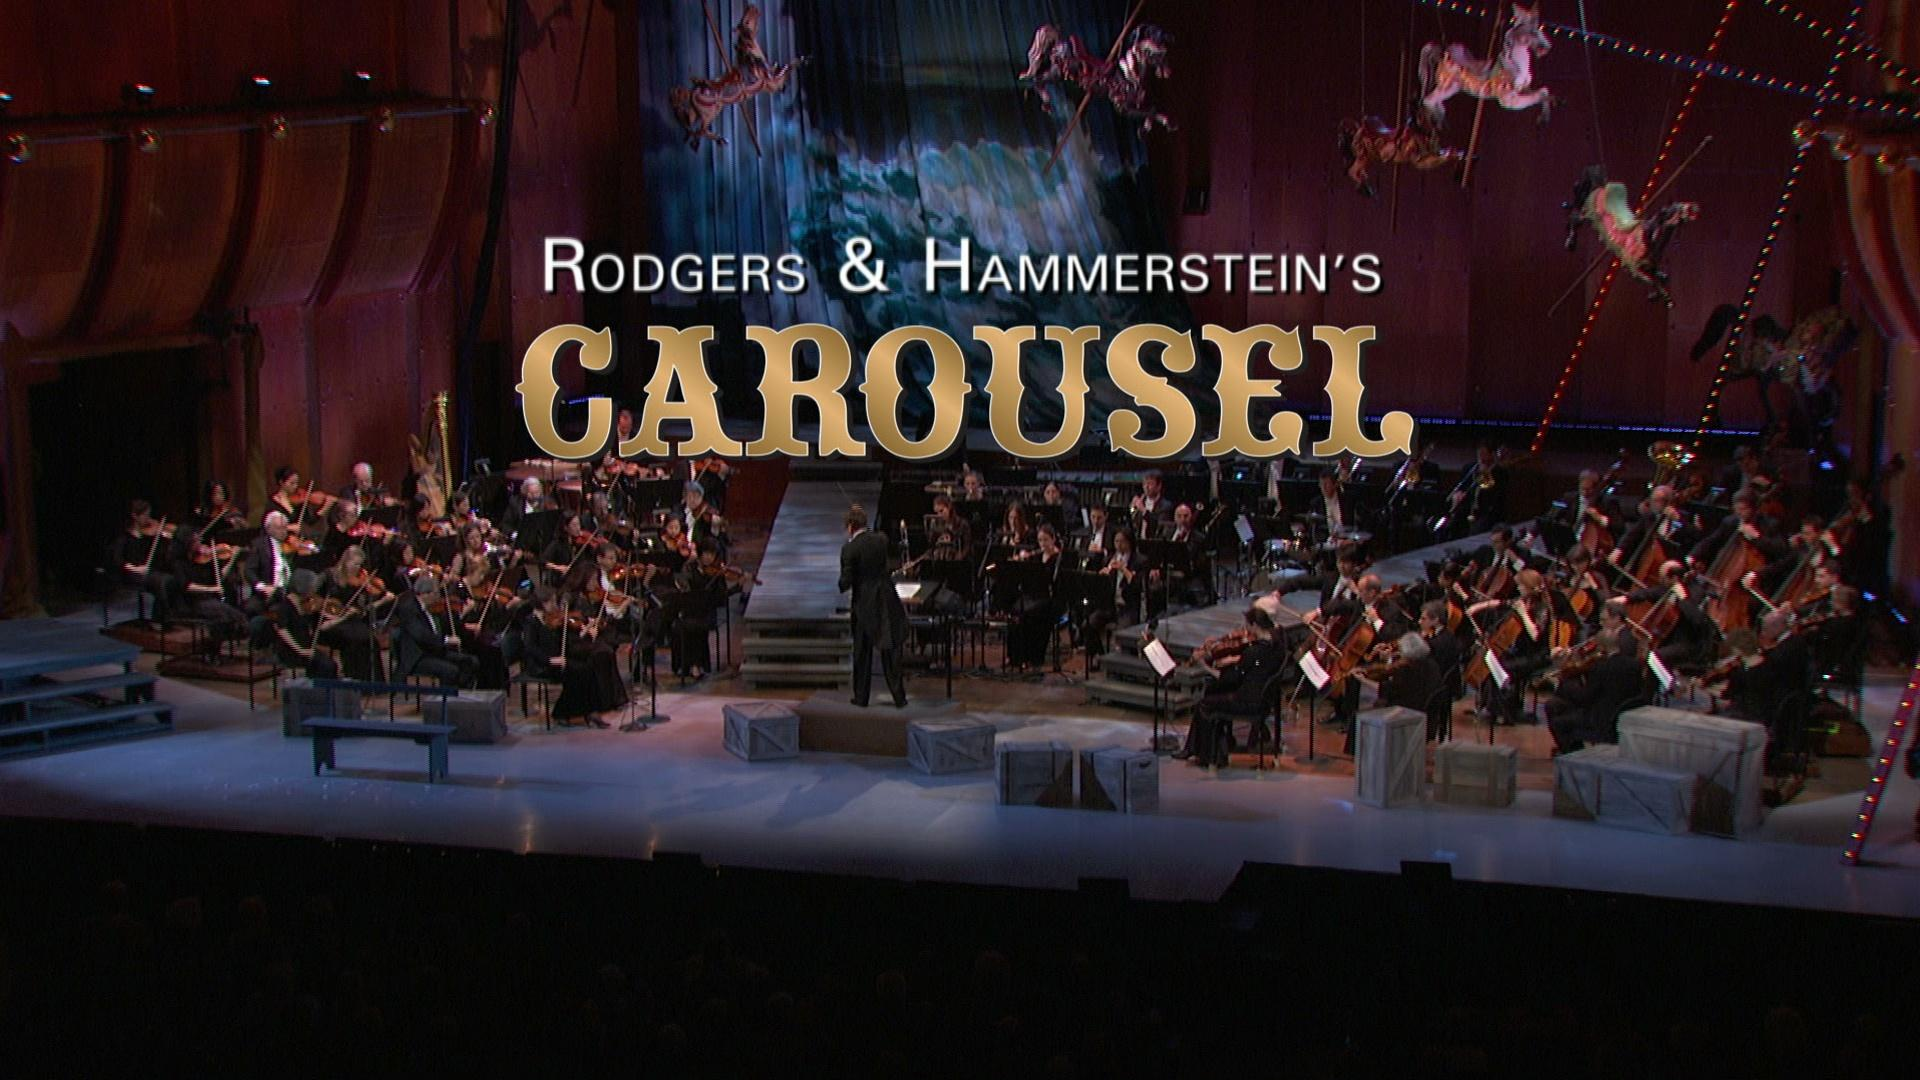 Quot Rodgers Amp Hammerstein S Carousel Quot Program Highlights